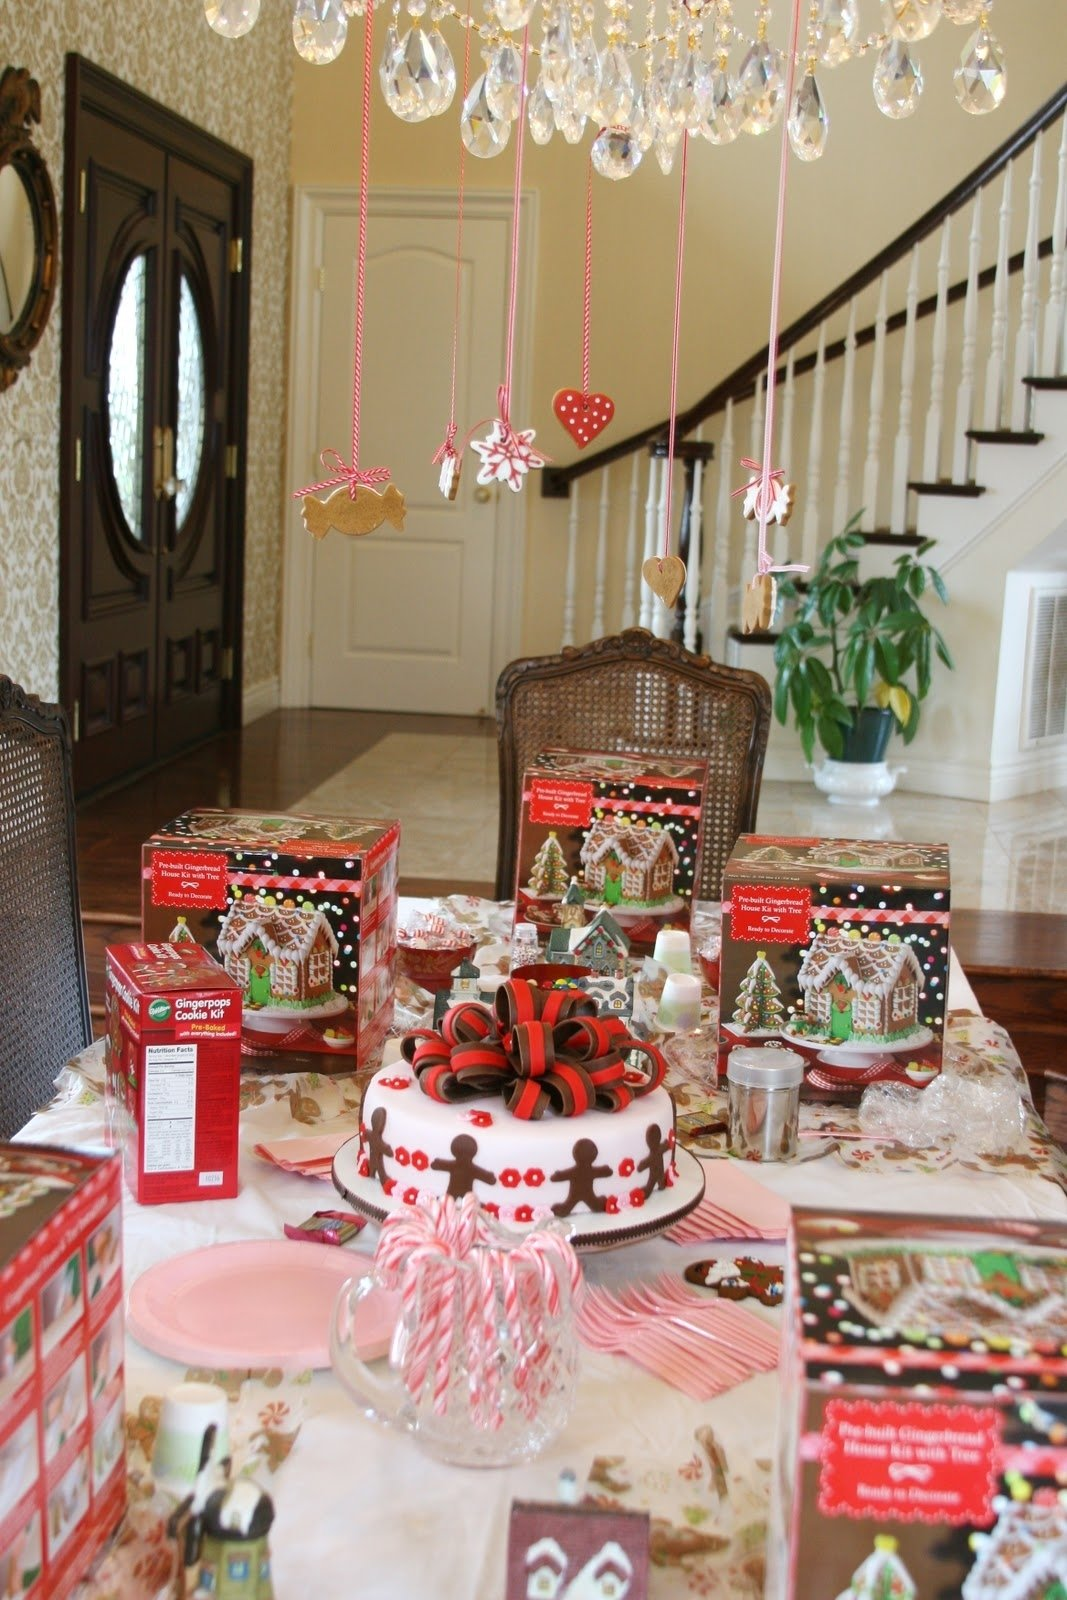 10 Cute Great Birthday Party Ideas For Adults house birthday party ideas architectural designs 2021